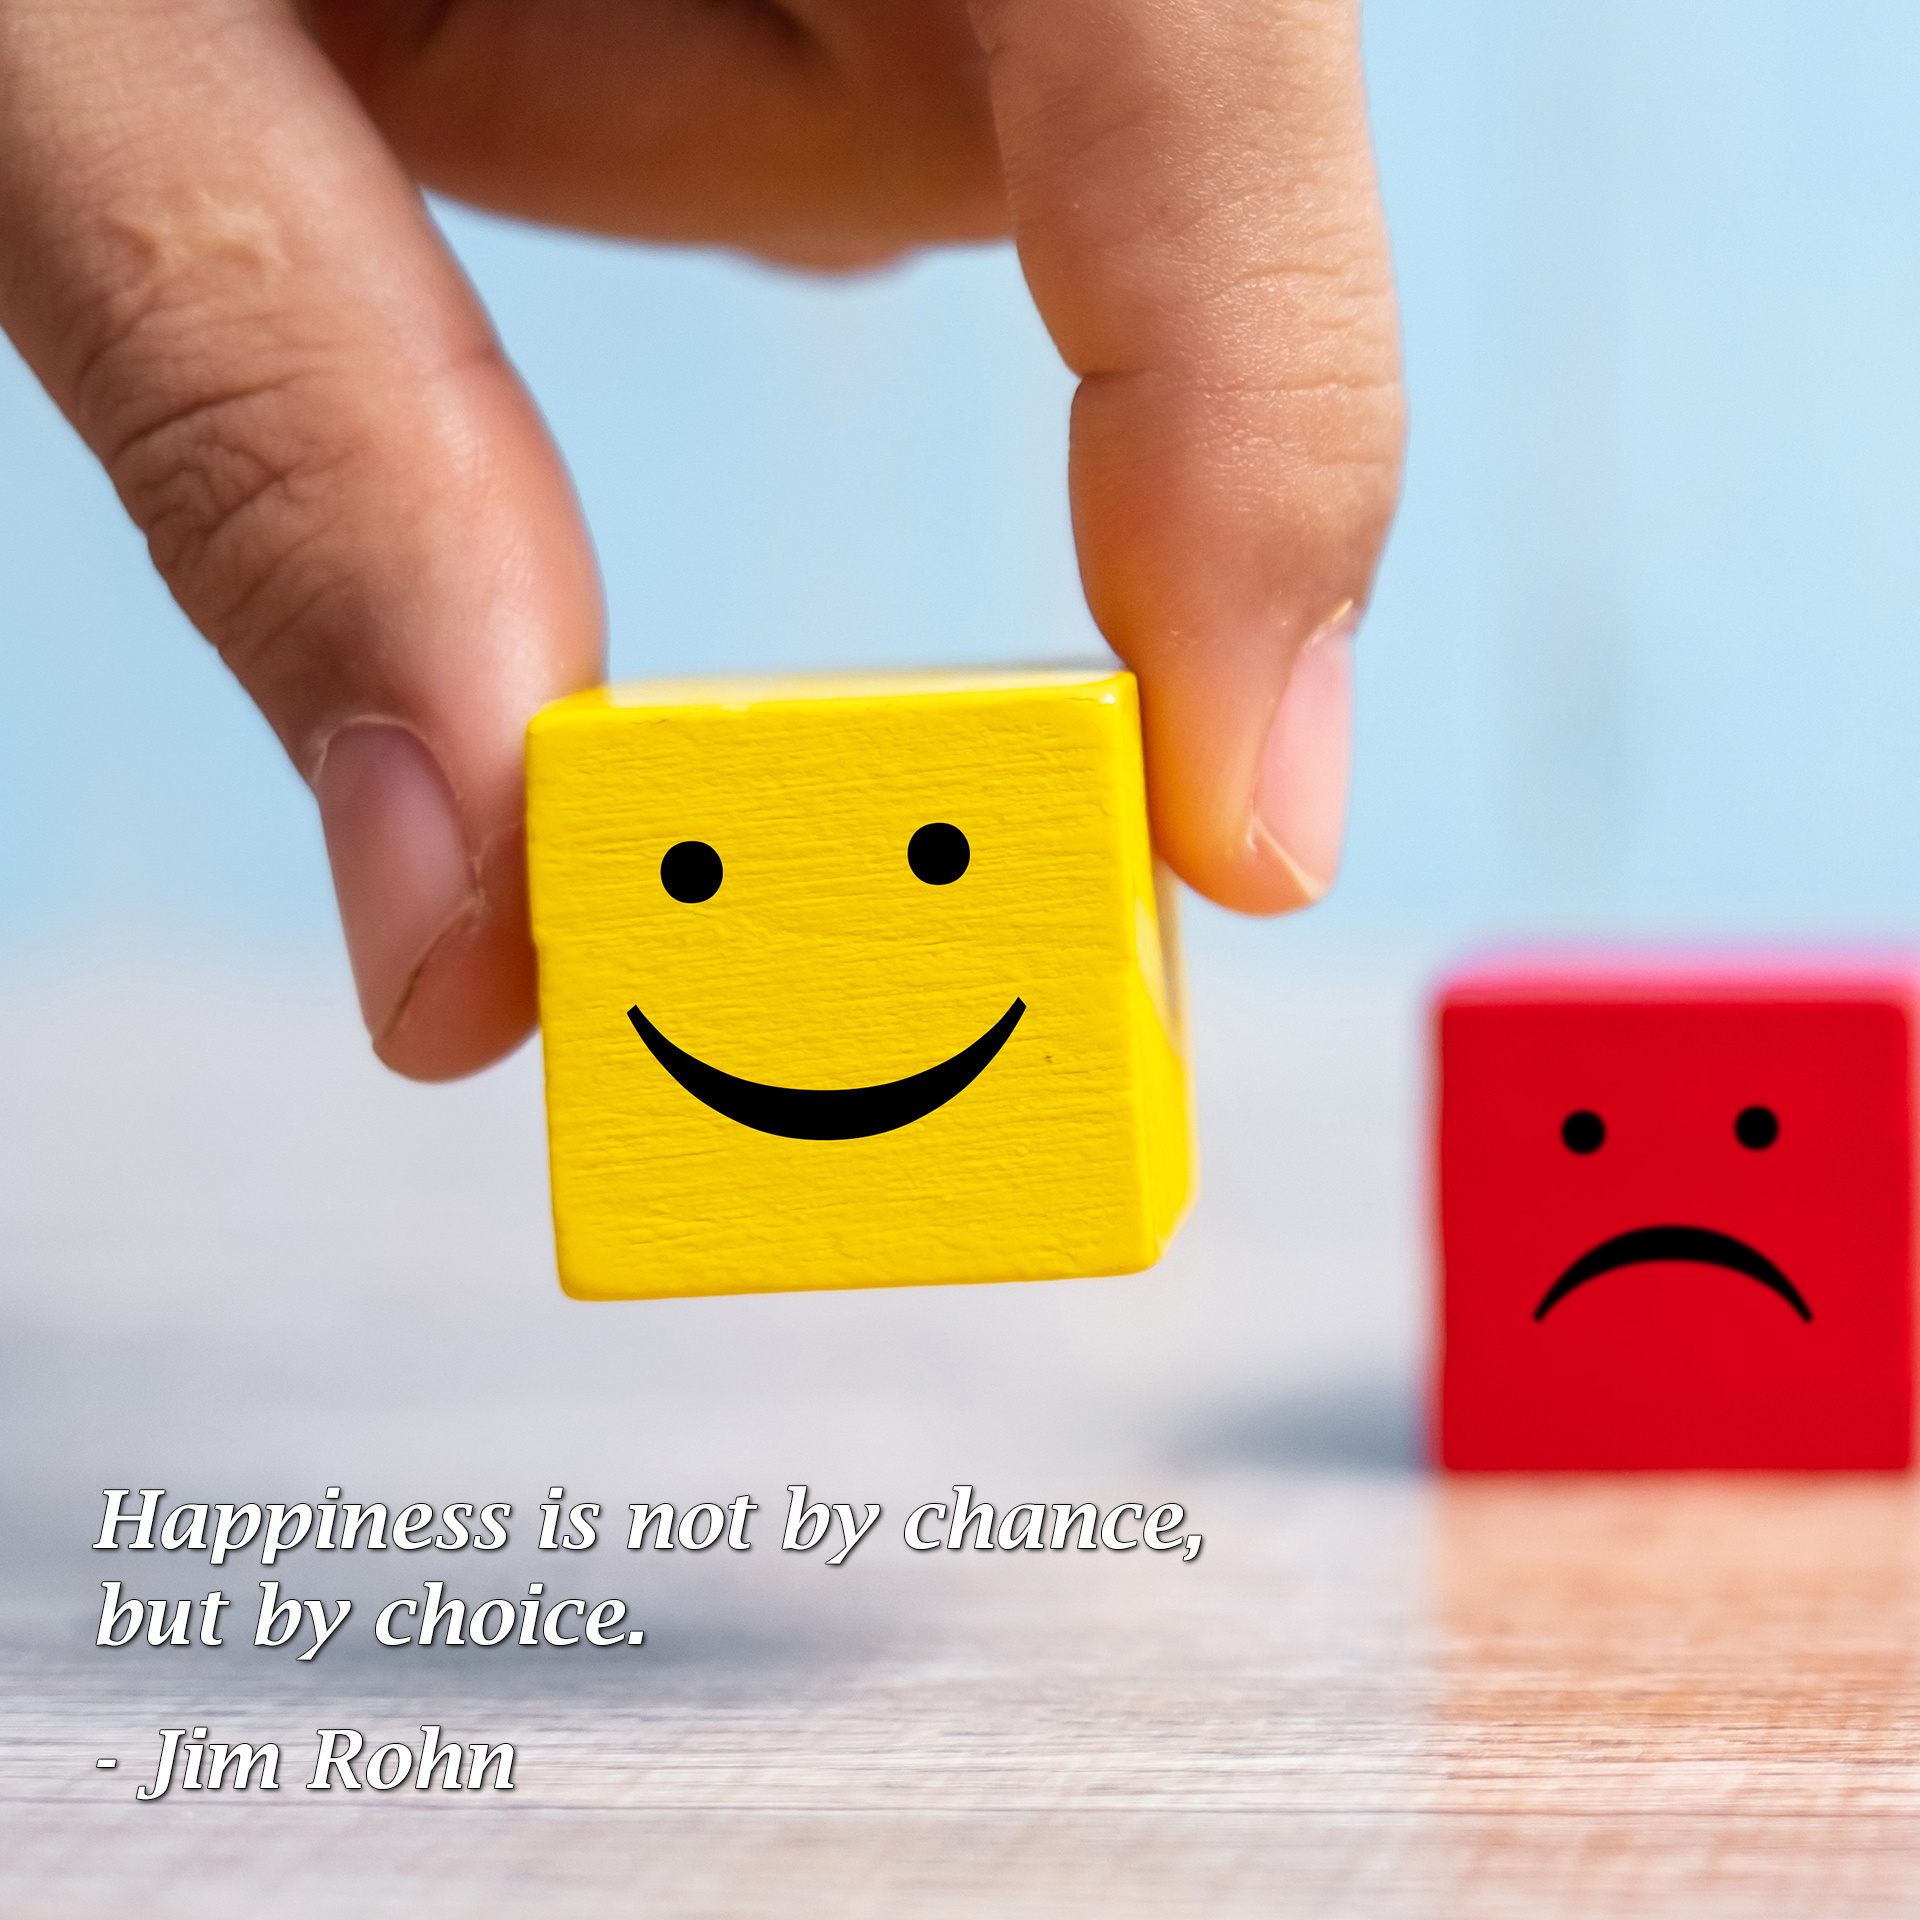 Happiness is not by chance, but by choice. - Jim Rohn - Free Teens Youth - Changing Minds, Transforming Lives